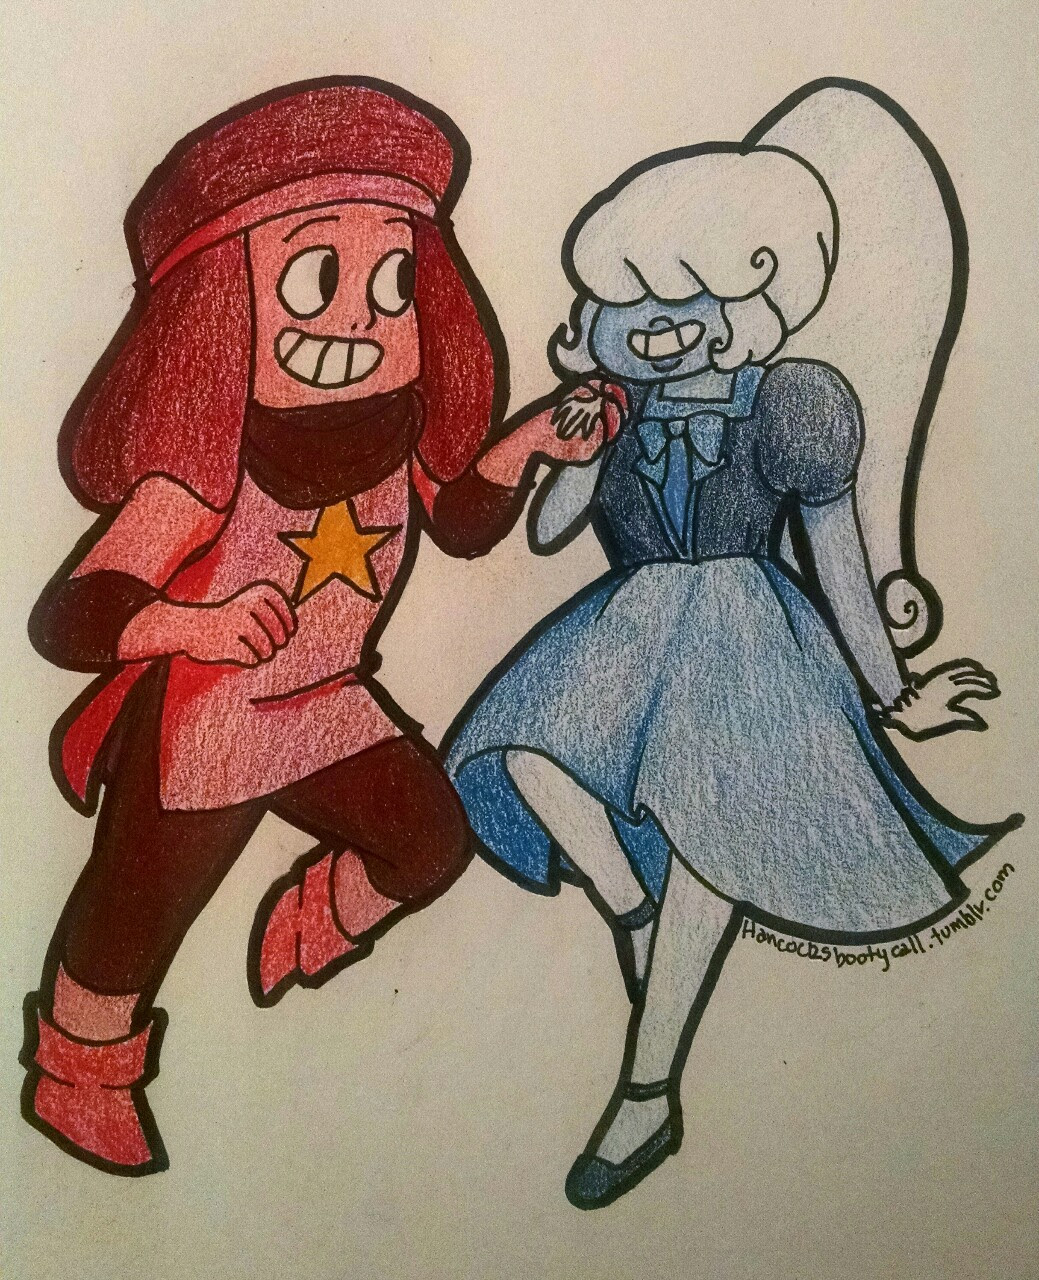 Ruby and Sapphire, from Steven Universe!! I always want to see more of them! And maybe more outfits too 😉 Done with pen and prismacolors 💜